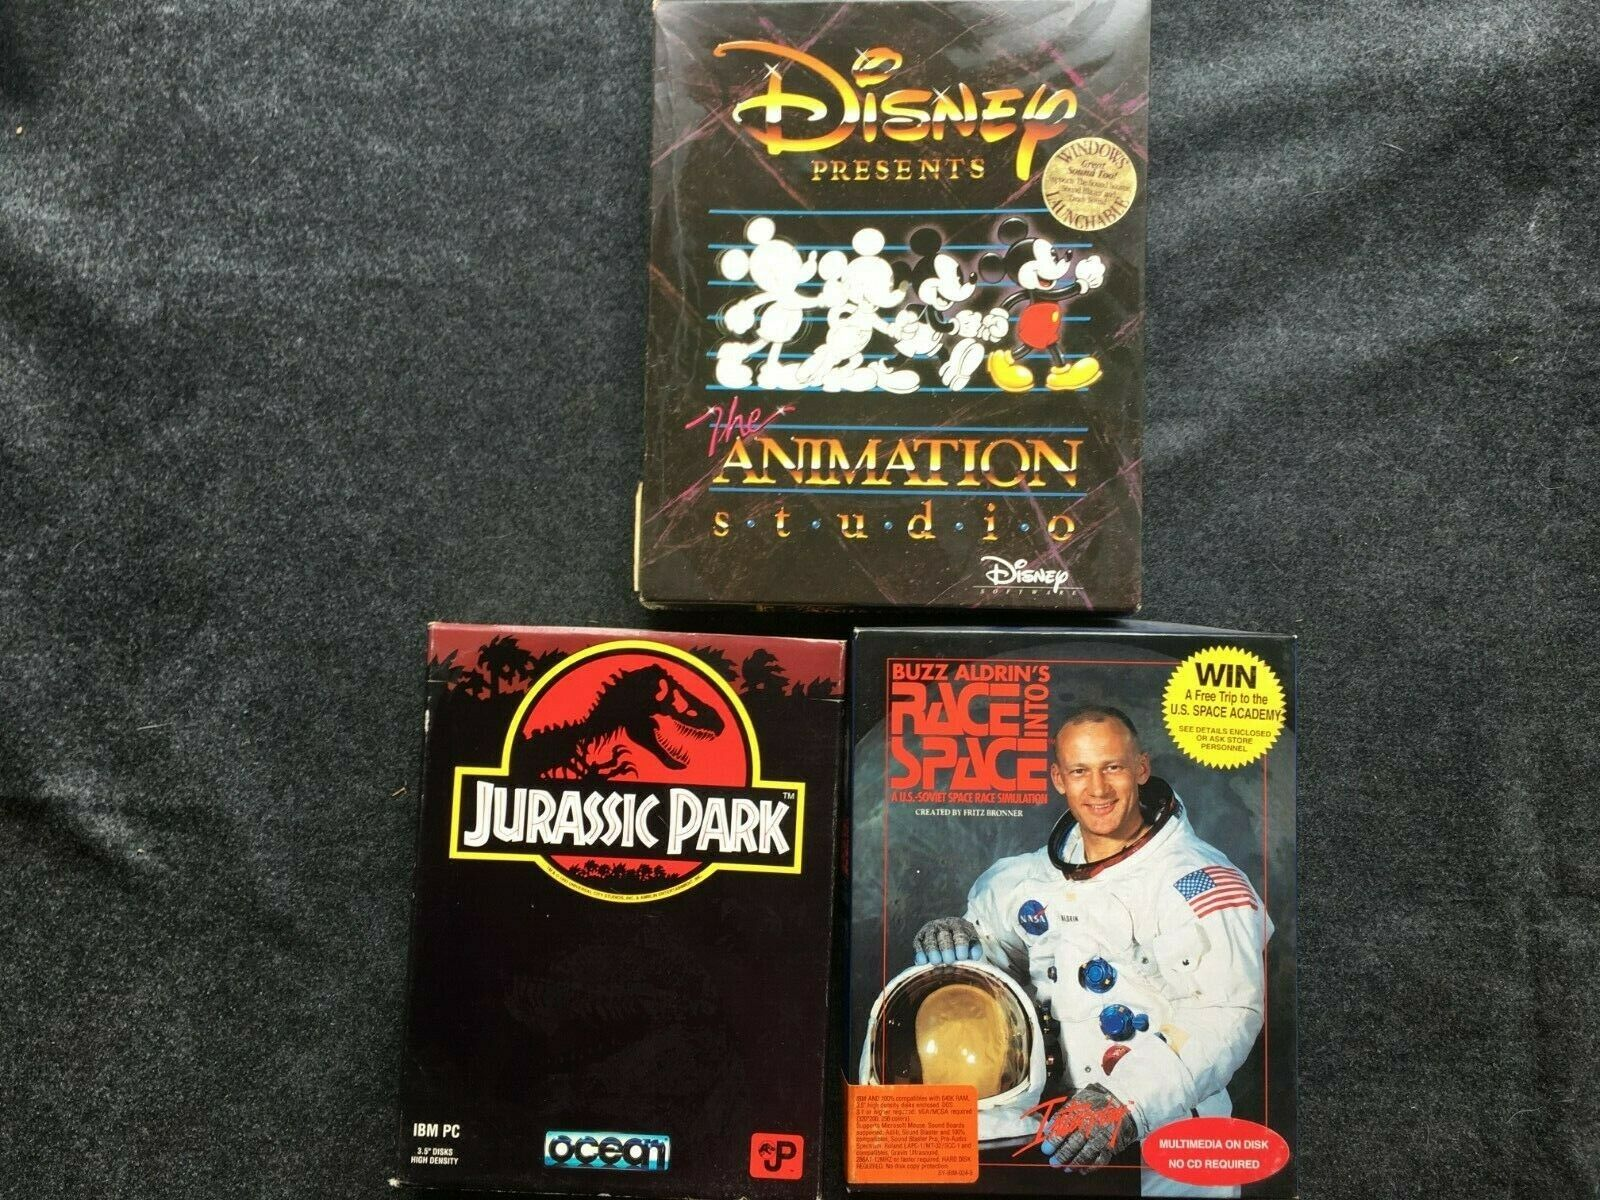 Computer Games - Lot of 3 Complete in Box Computer Games - Disney, Jurassic Park, Buzz Aldrin